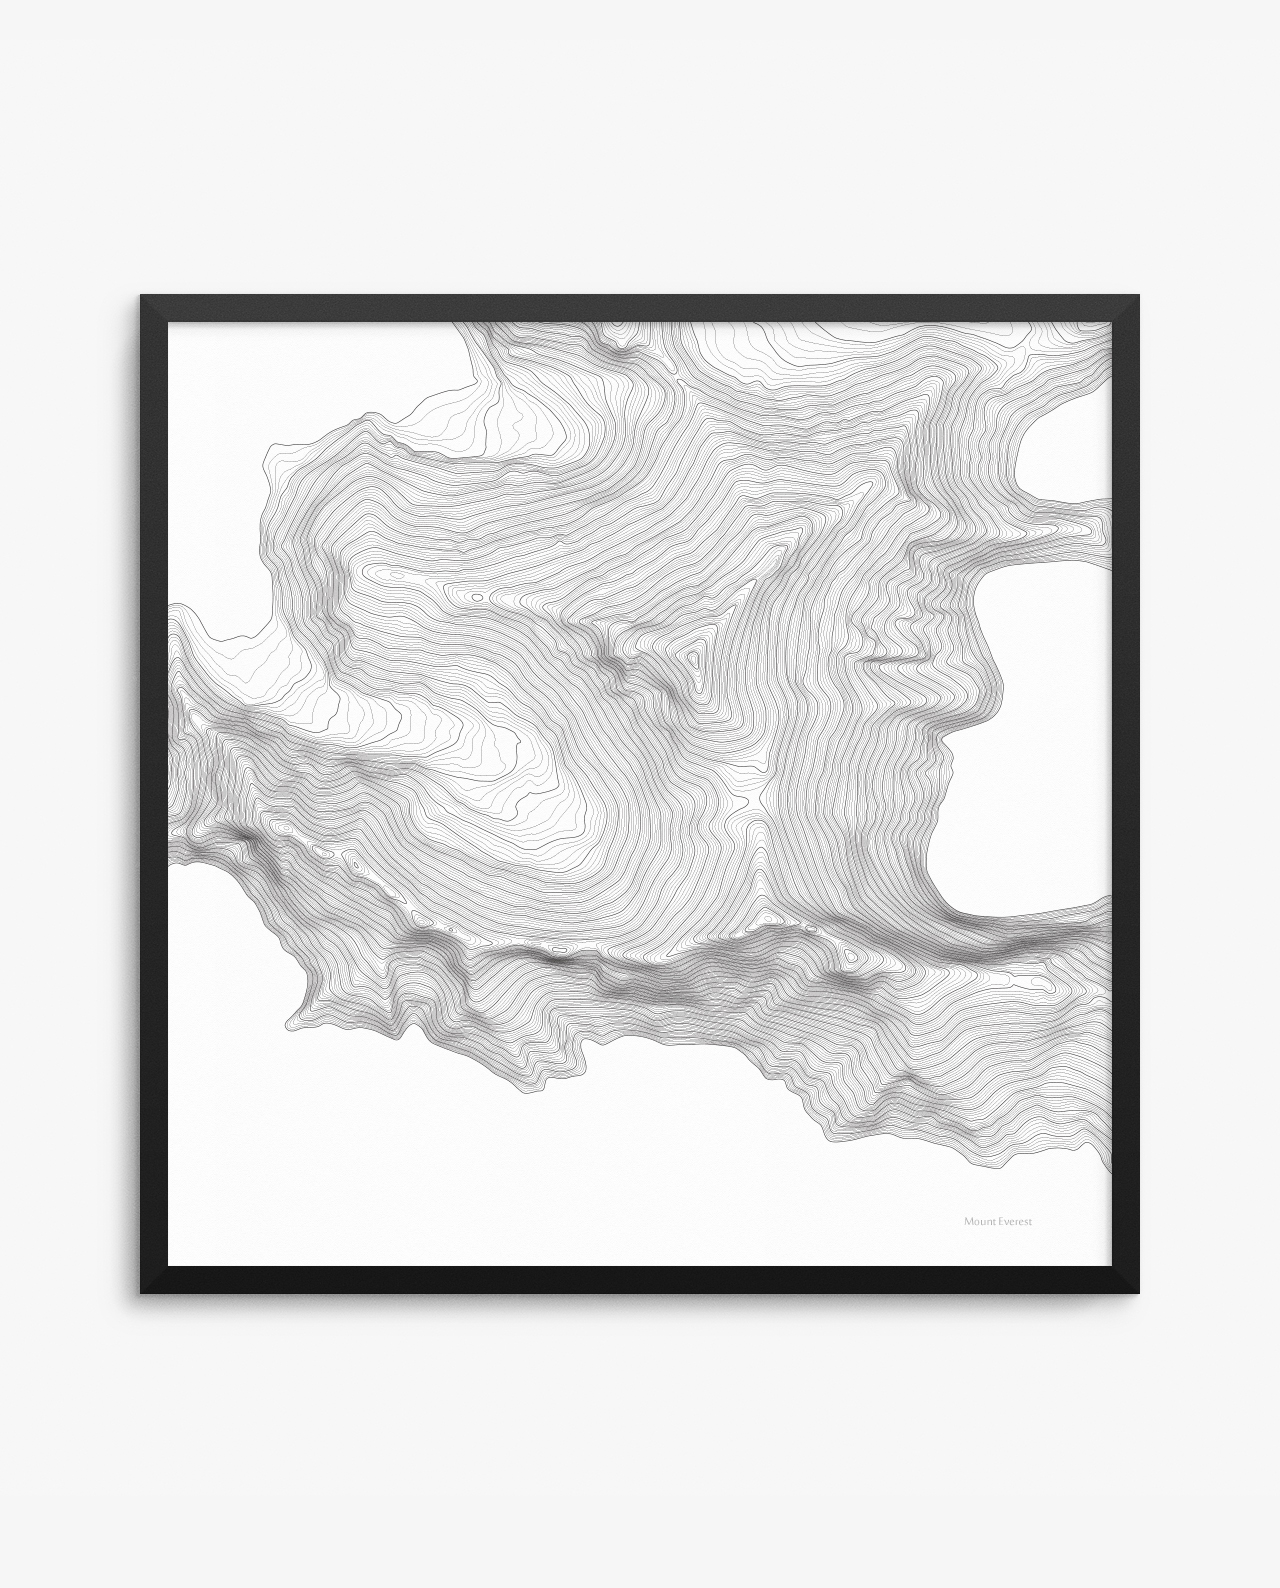 Mount Everest Contours White Framed Poster – Seven Summits Art